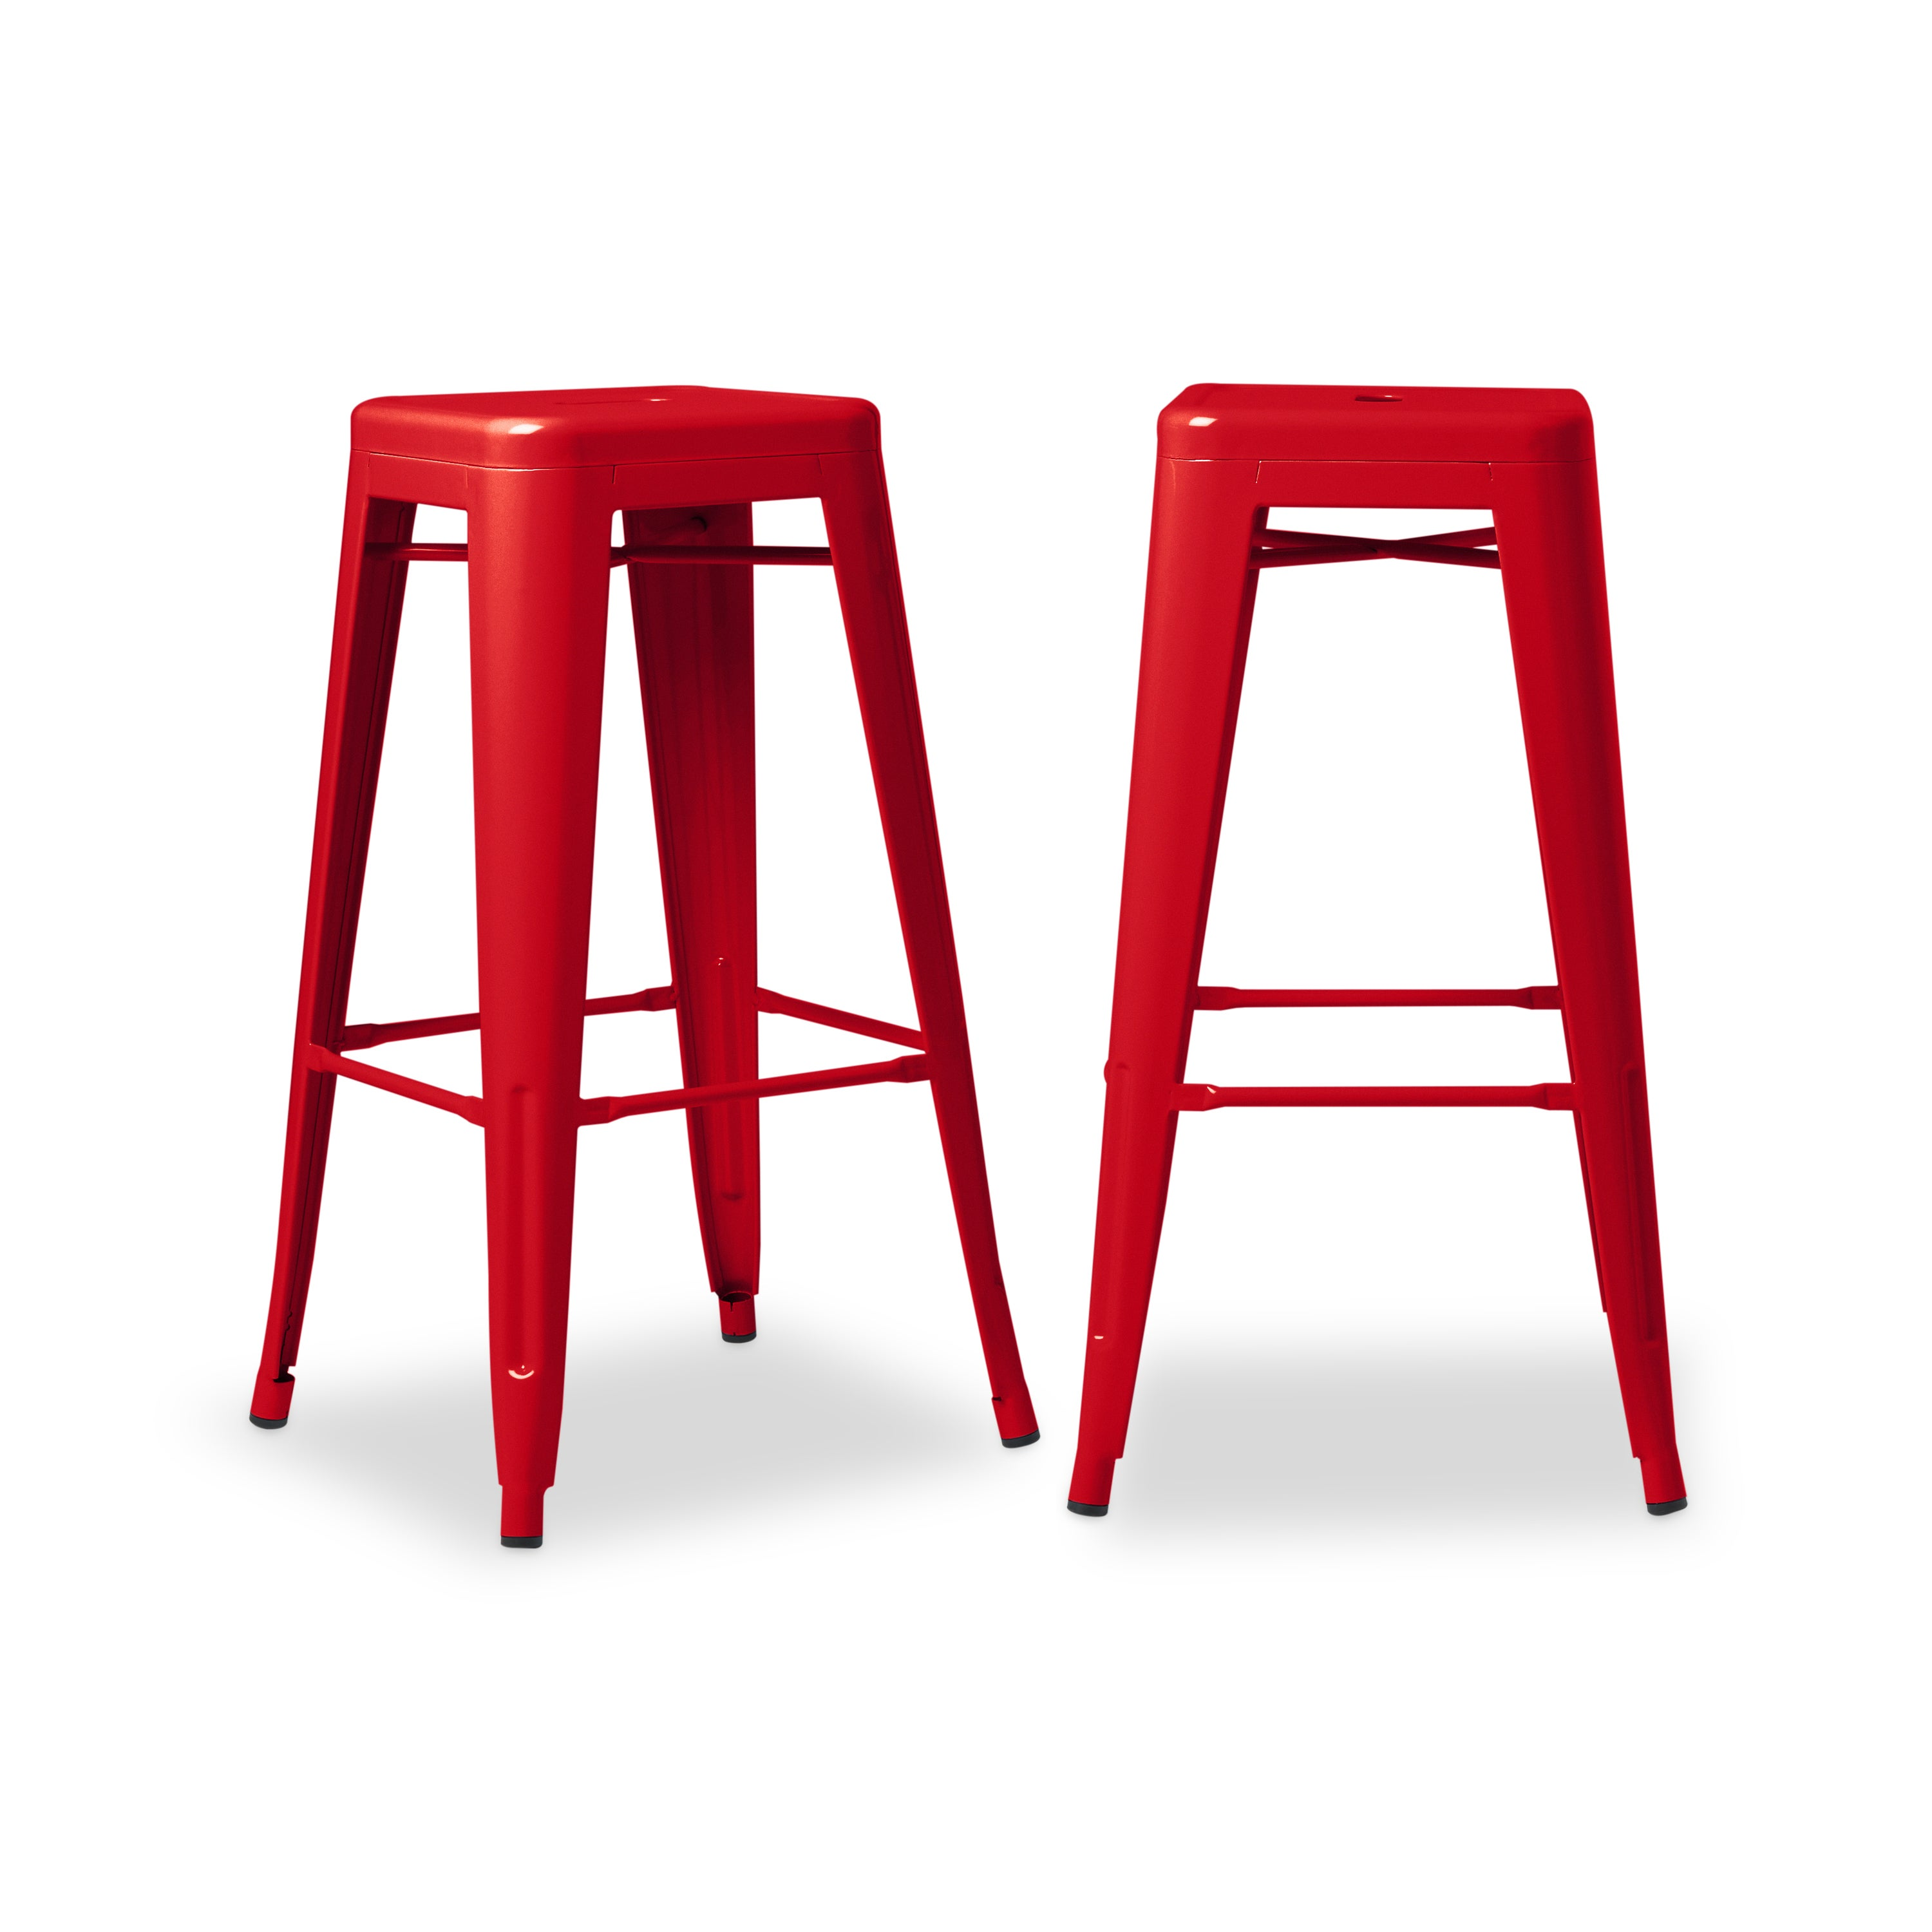 metal set stool tabouret home of product garden overstock loft bar counter carbon shipping free inch stools today